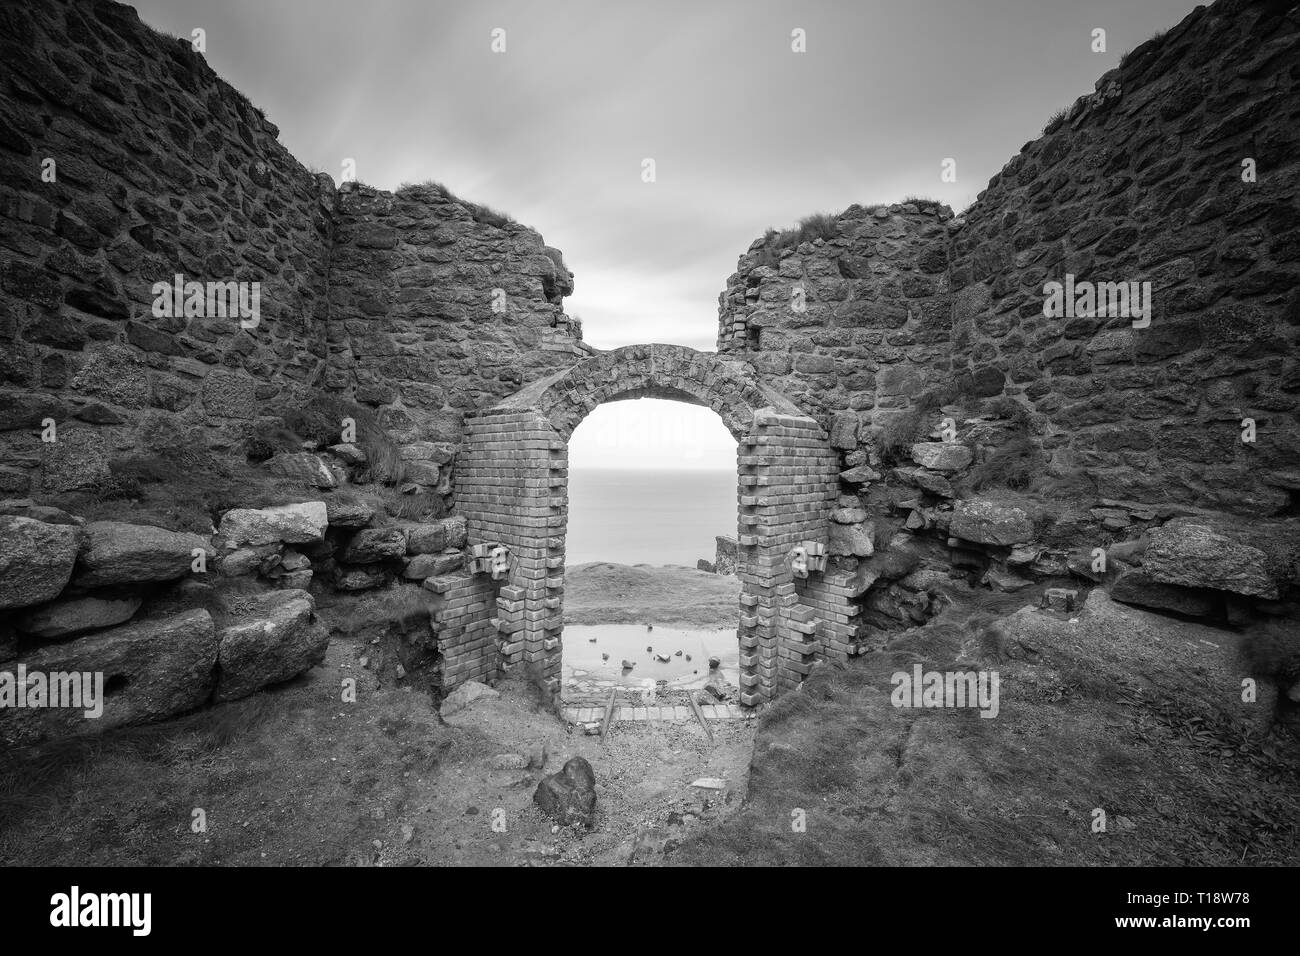 Botallack is a village in west Cornwall, United Kingdom. The village is in a former tin mining area situated between the town of St Just in Penwith an - Stock Image